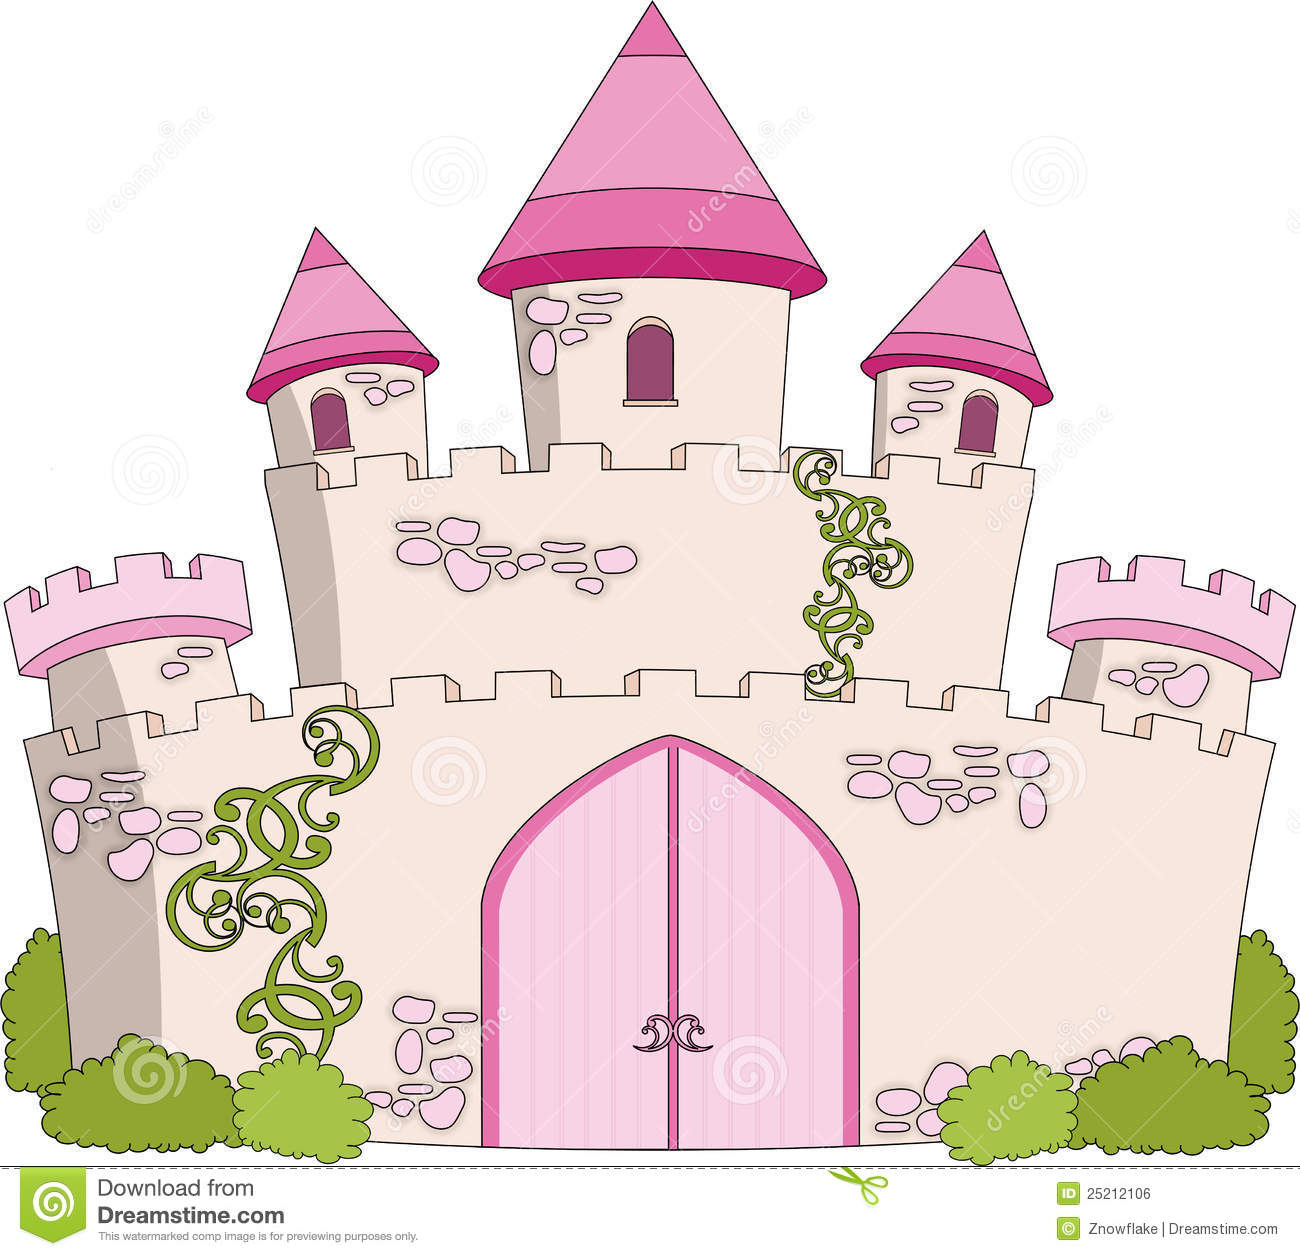 Fairy Castle Drawing at GetDrawings.com   Free for personal use ...